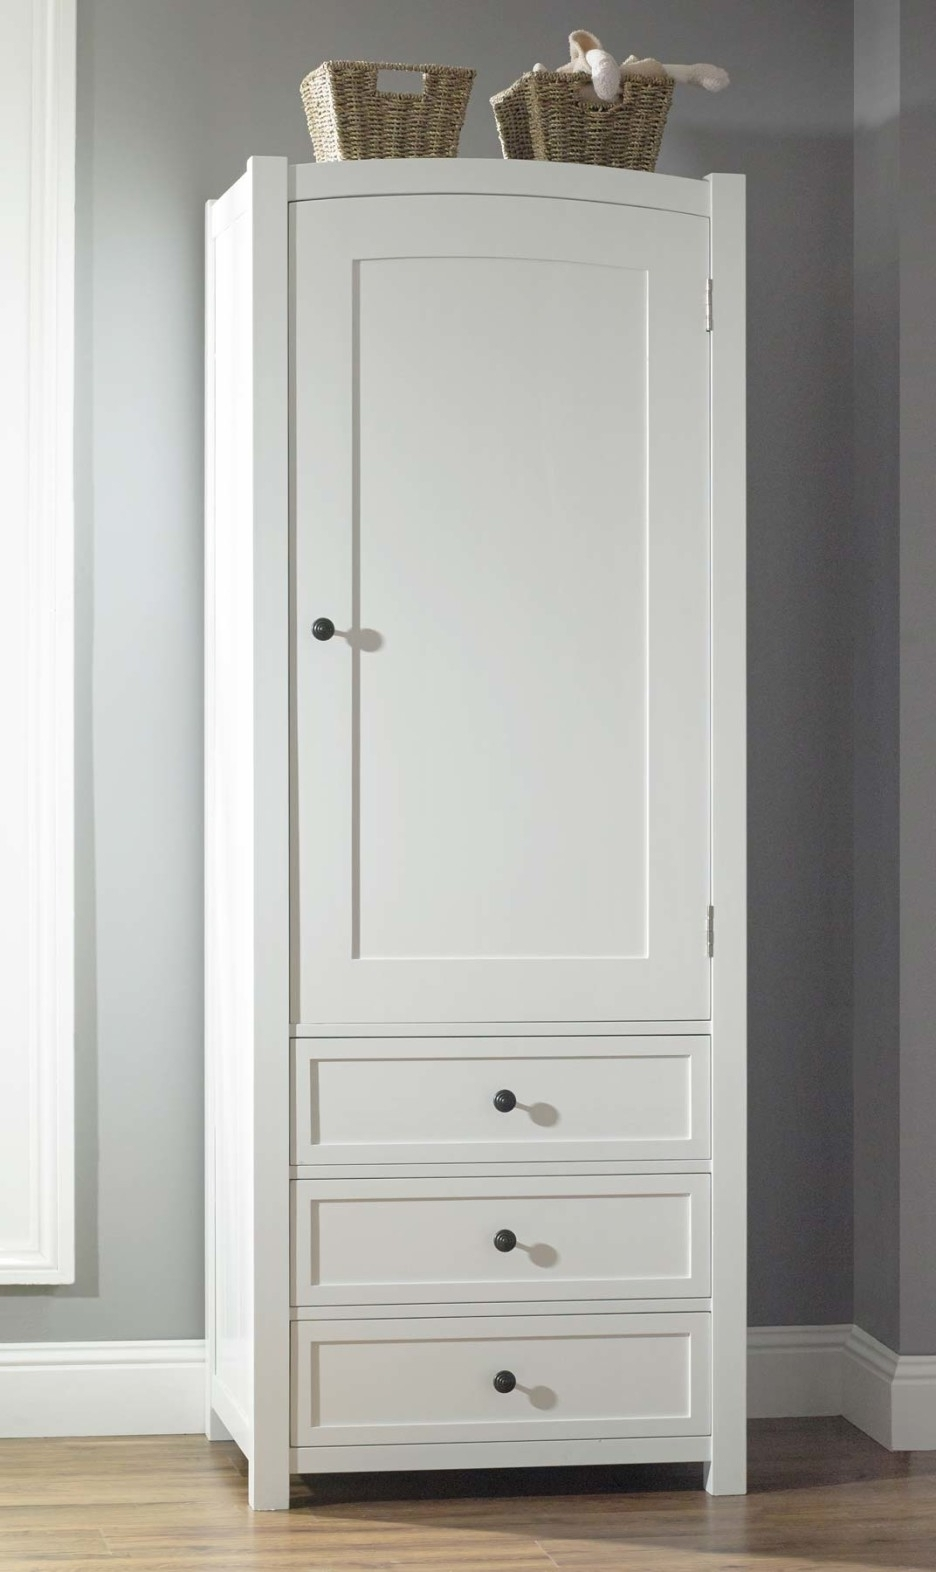 Preferred Cheap Wardrobes With Drawers Within Minimalist White Painted Wooden Wardrobe Cupboard With Half Wooden (View 13 of 15)